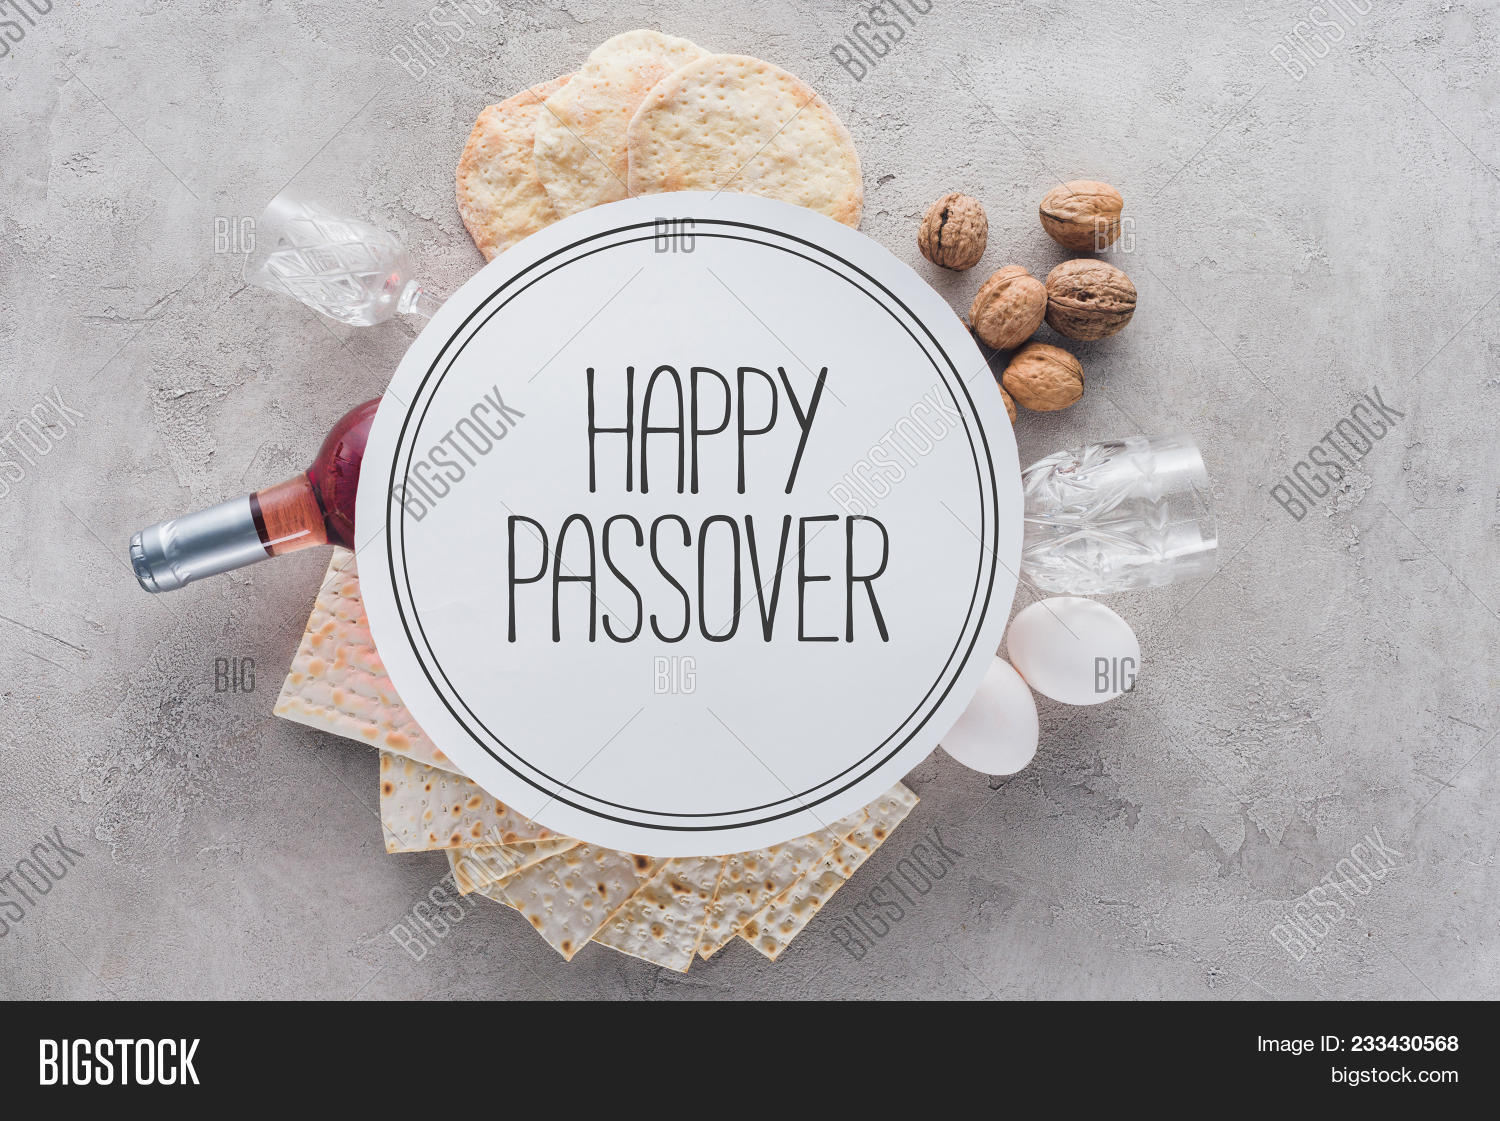 Top view matza plate image photo free trial bigstock top view of matza and plate with happy passover greeting jewish passover holiday concept m4hsunfo